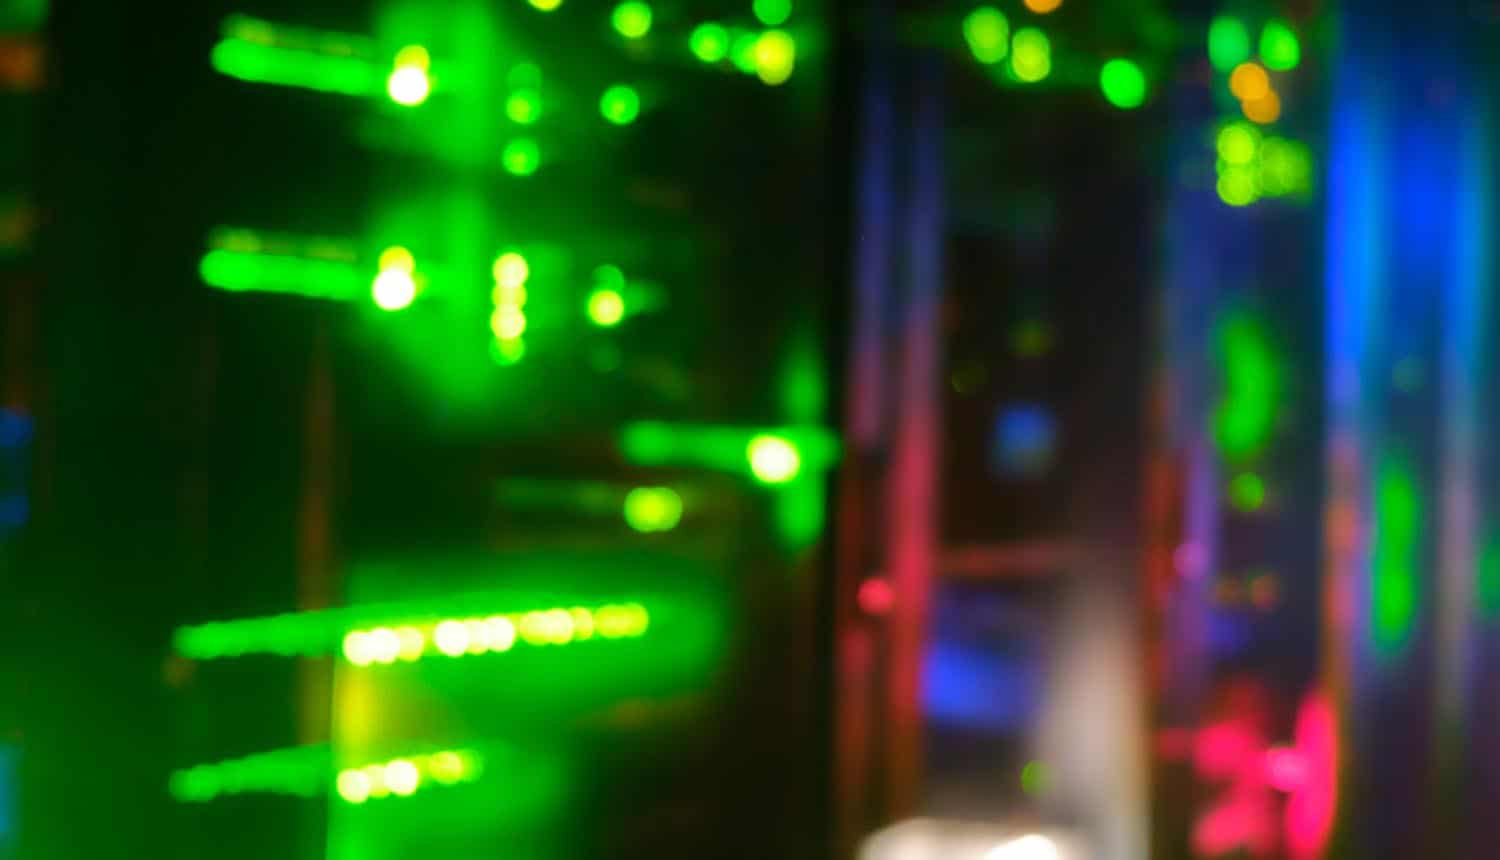 Blurred background of server hardware showing takedown of web shells on compromised Microsoft Exchange servers